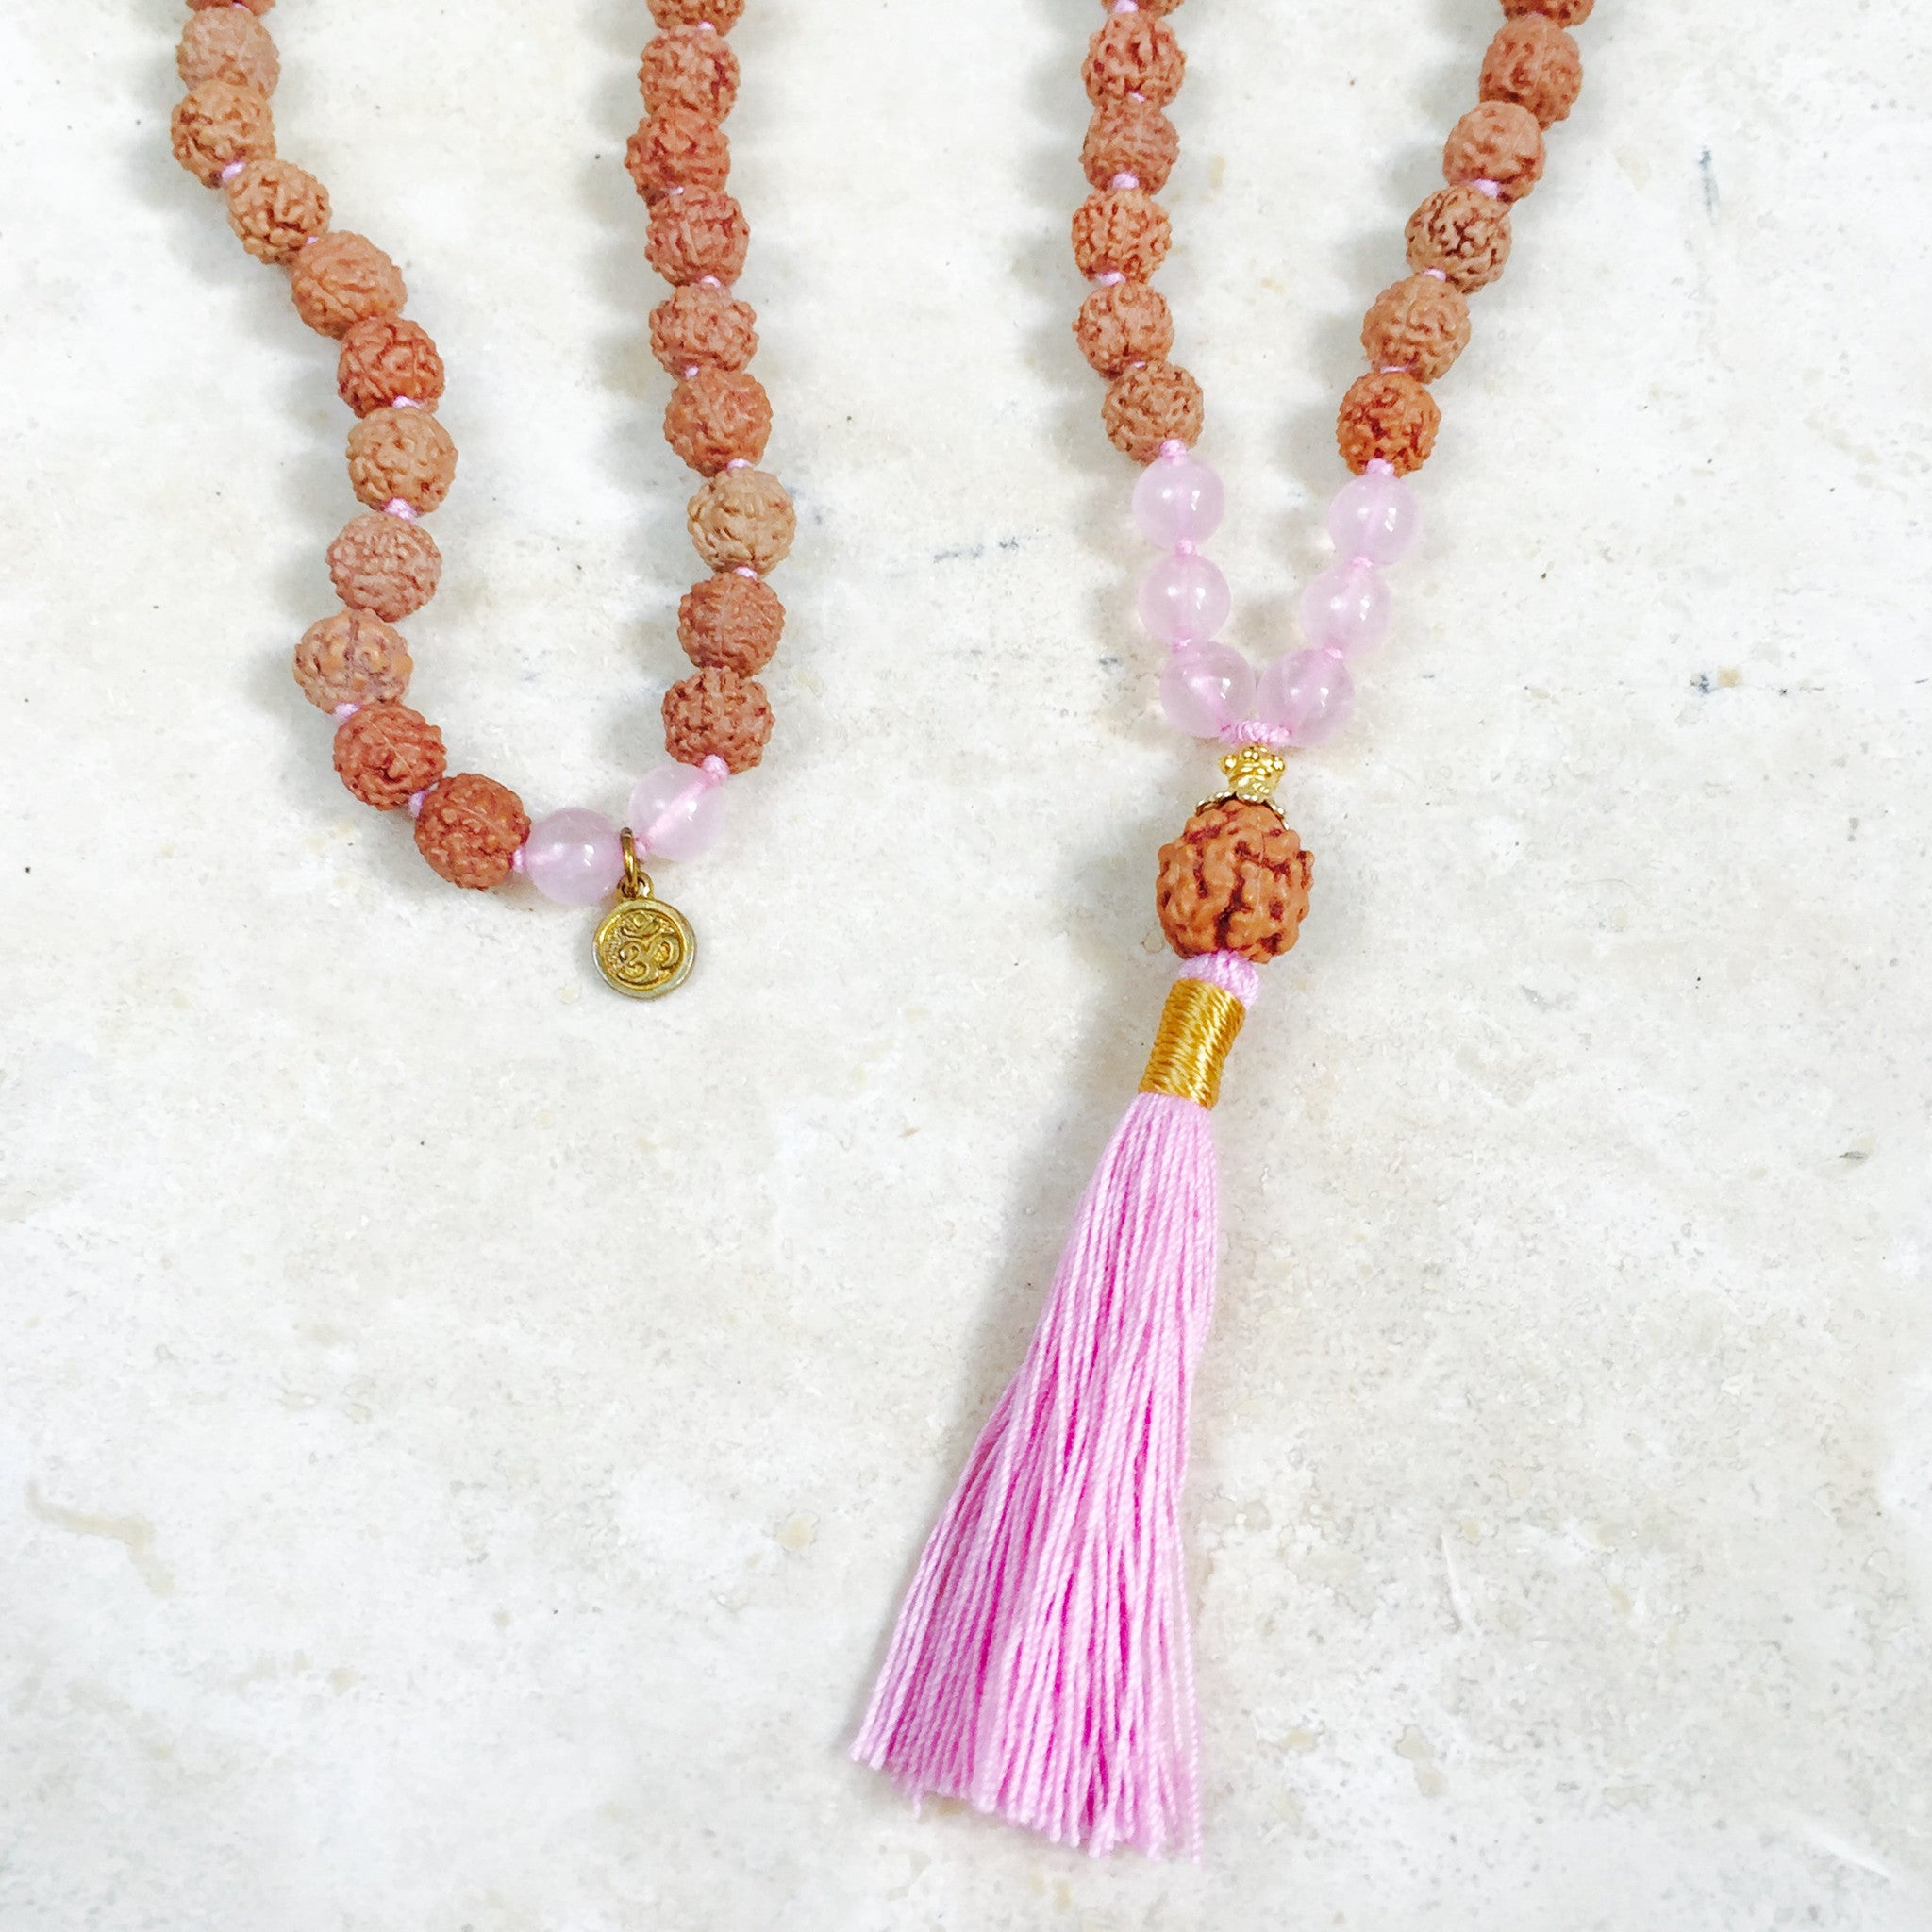 beads tiger bali malas bead male mala gem guru eye with products practice